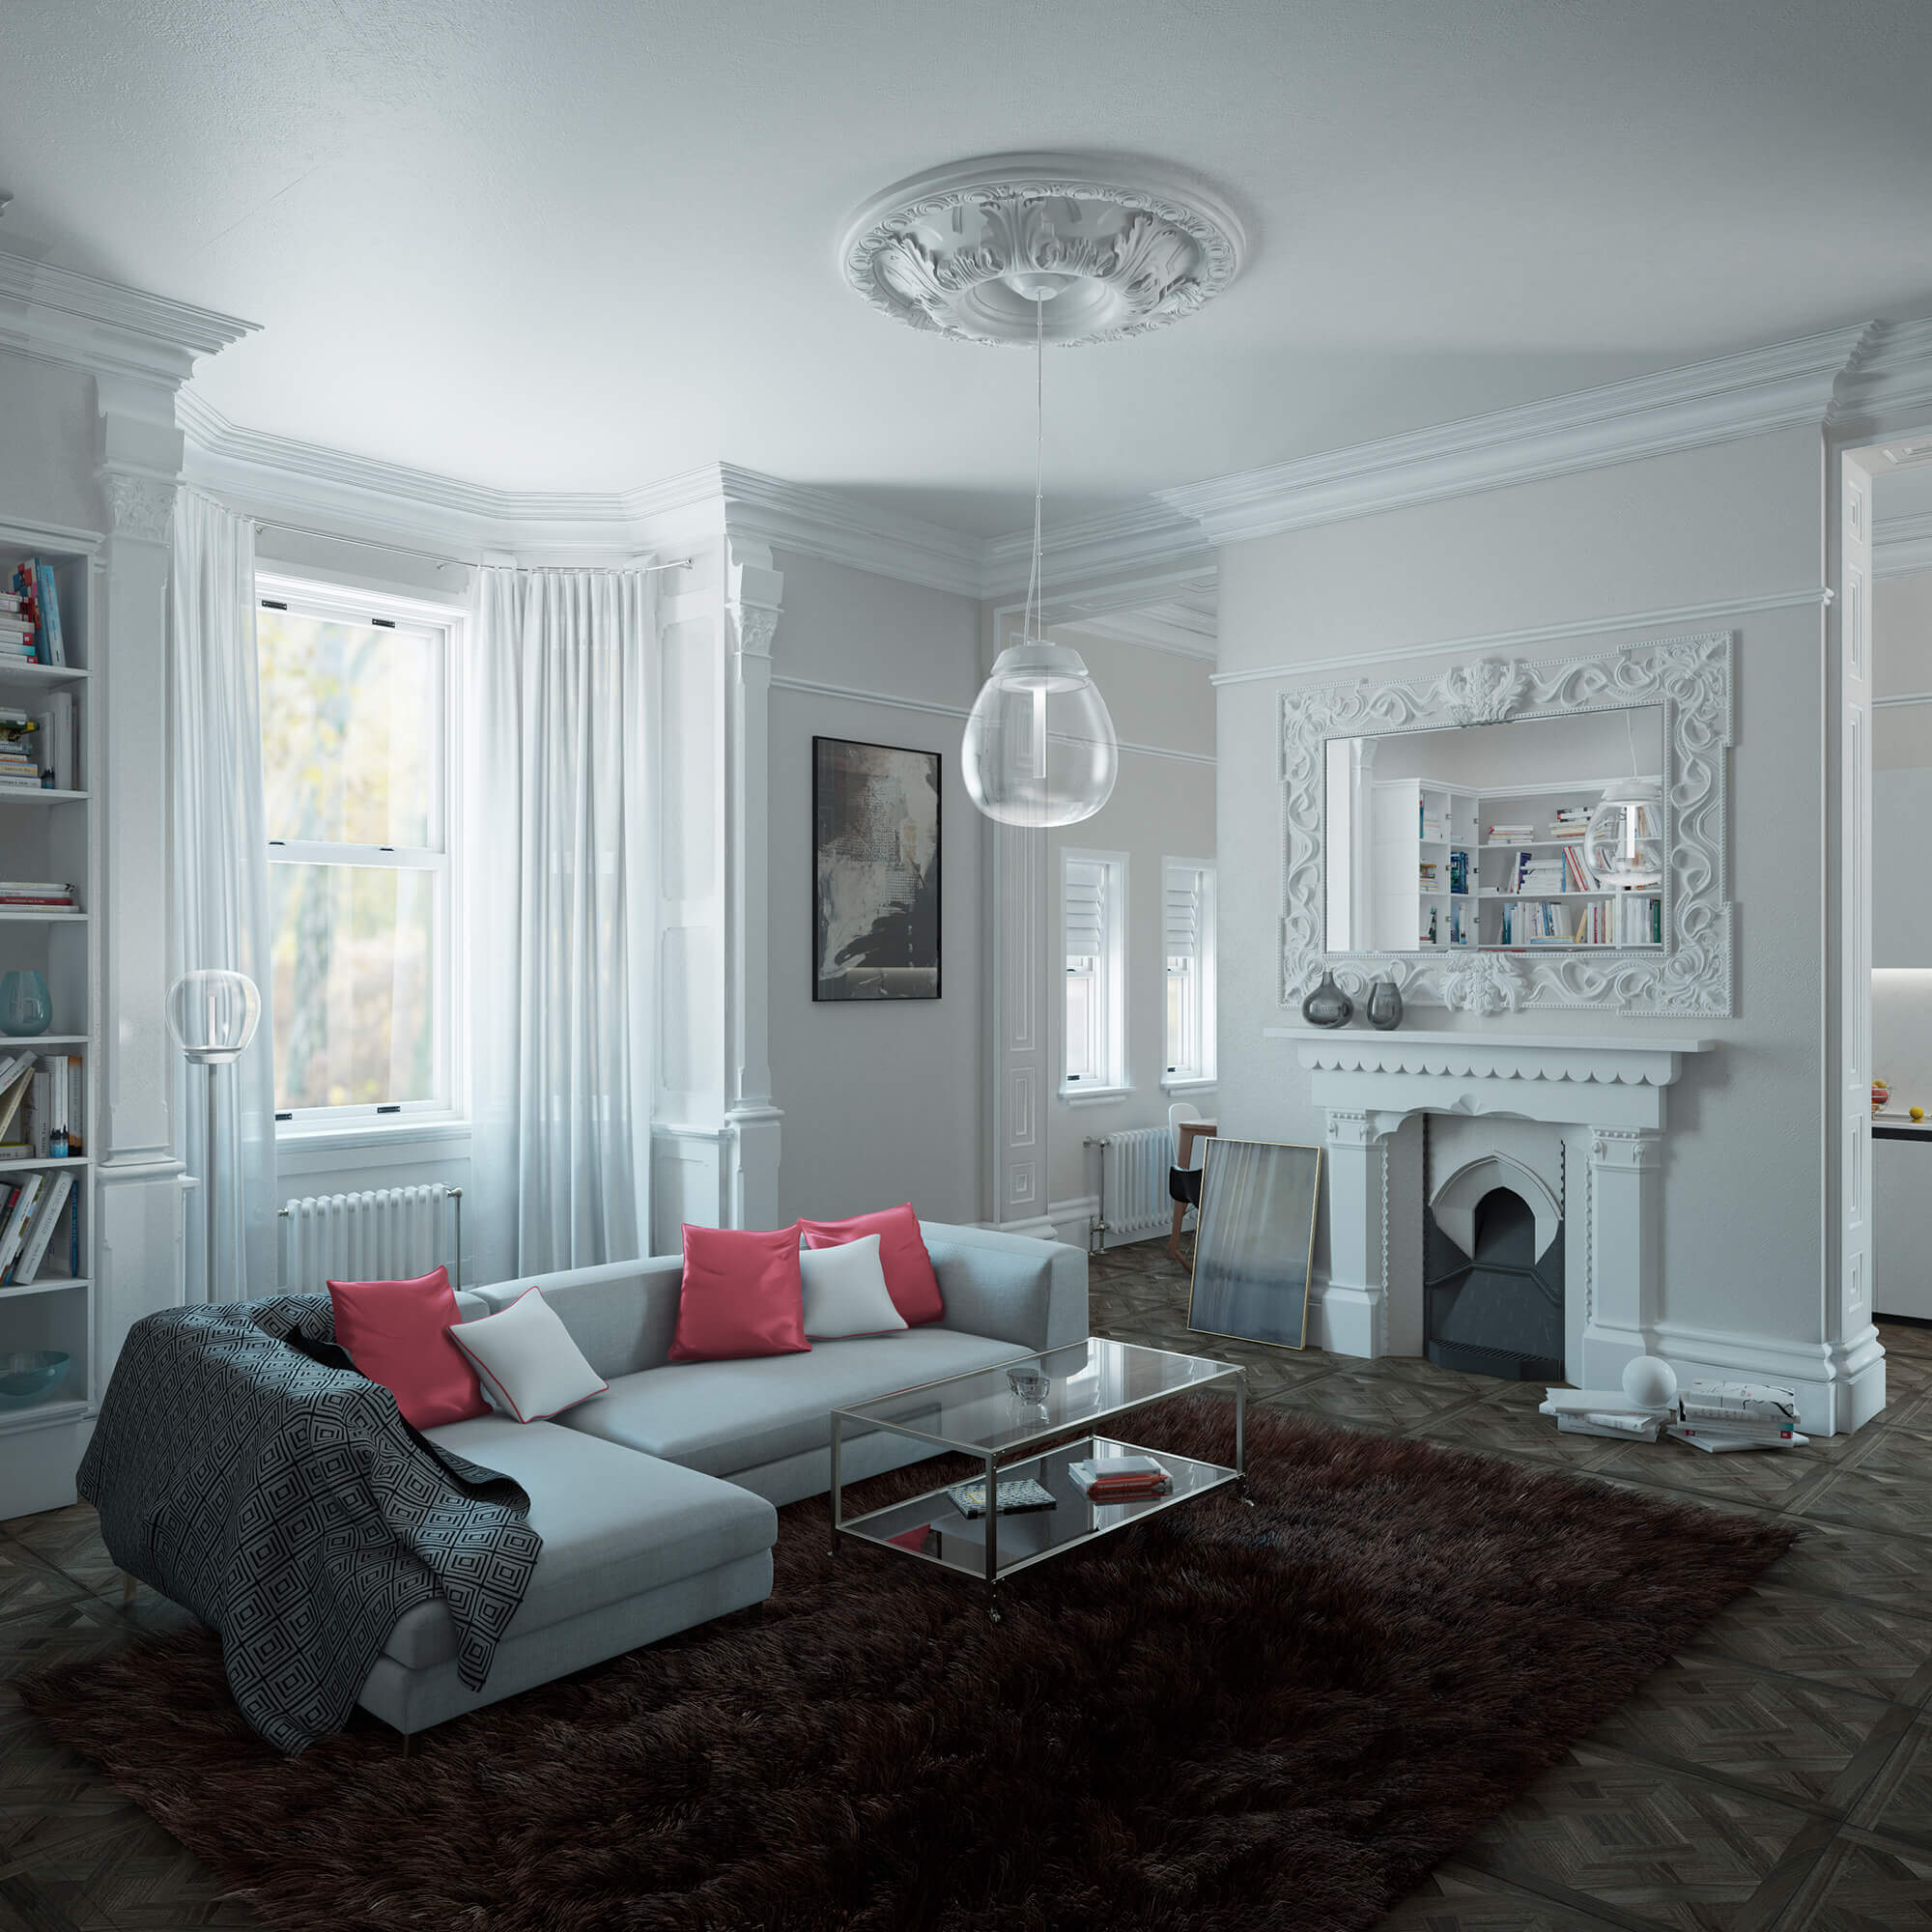 WHITE CROW STUDIOS - COURT COLLABORATION - ROYAL SUTTON PLACE -LIVING ROOM - INTERIOR CGI